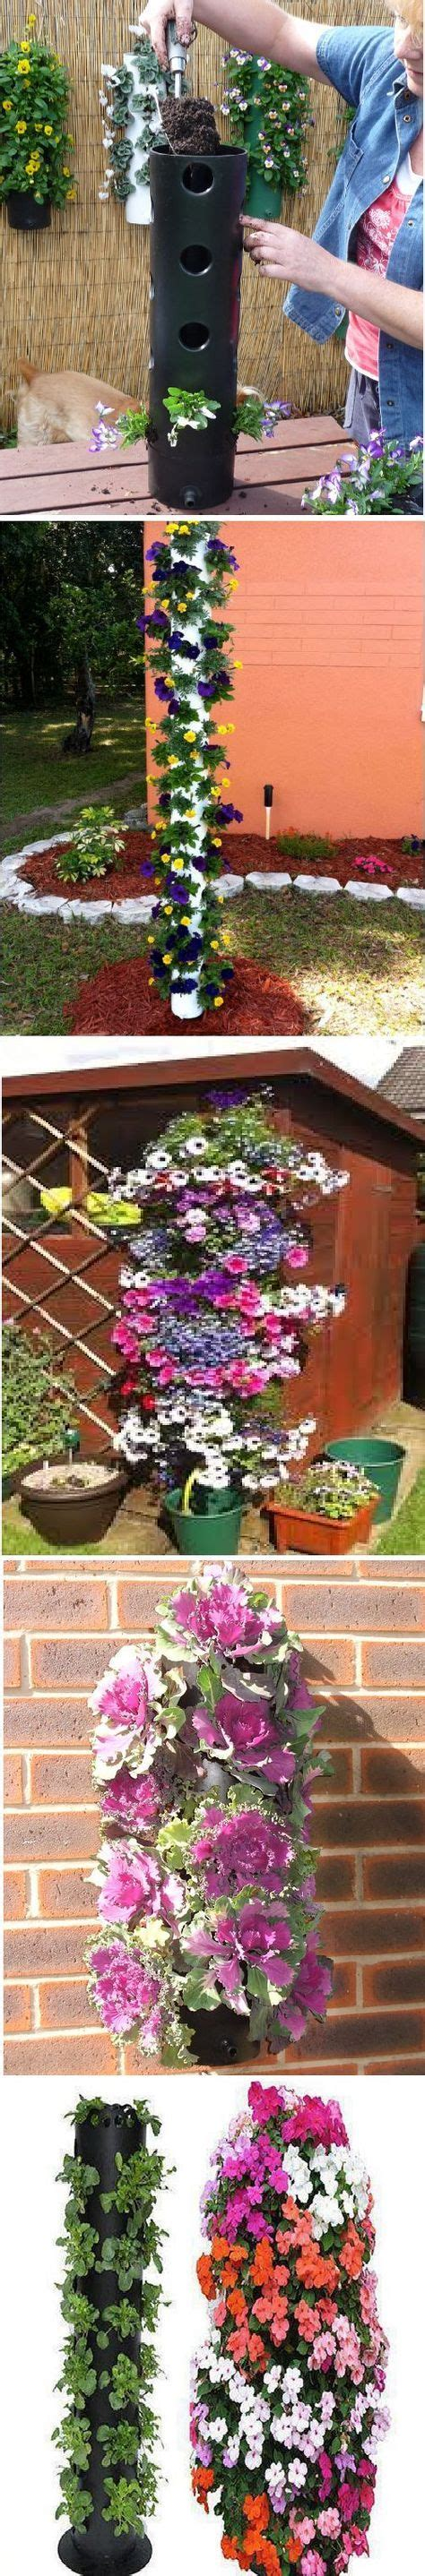 Polanter Vertical Gardening System by 36 Cool Indoor And Outdoor Vertical Garden Ideas Gardens